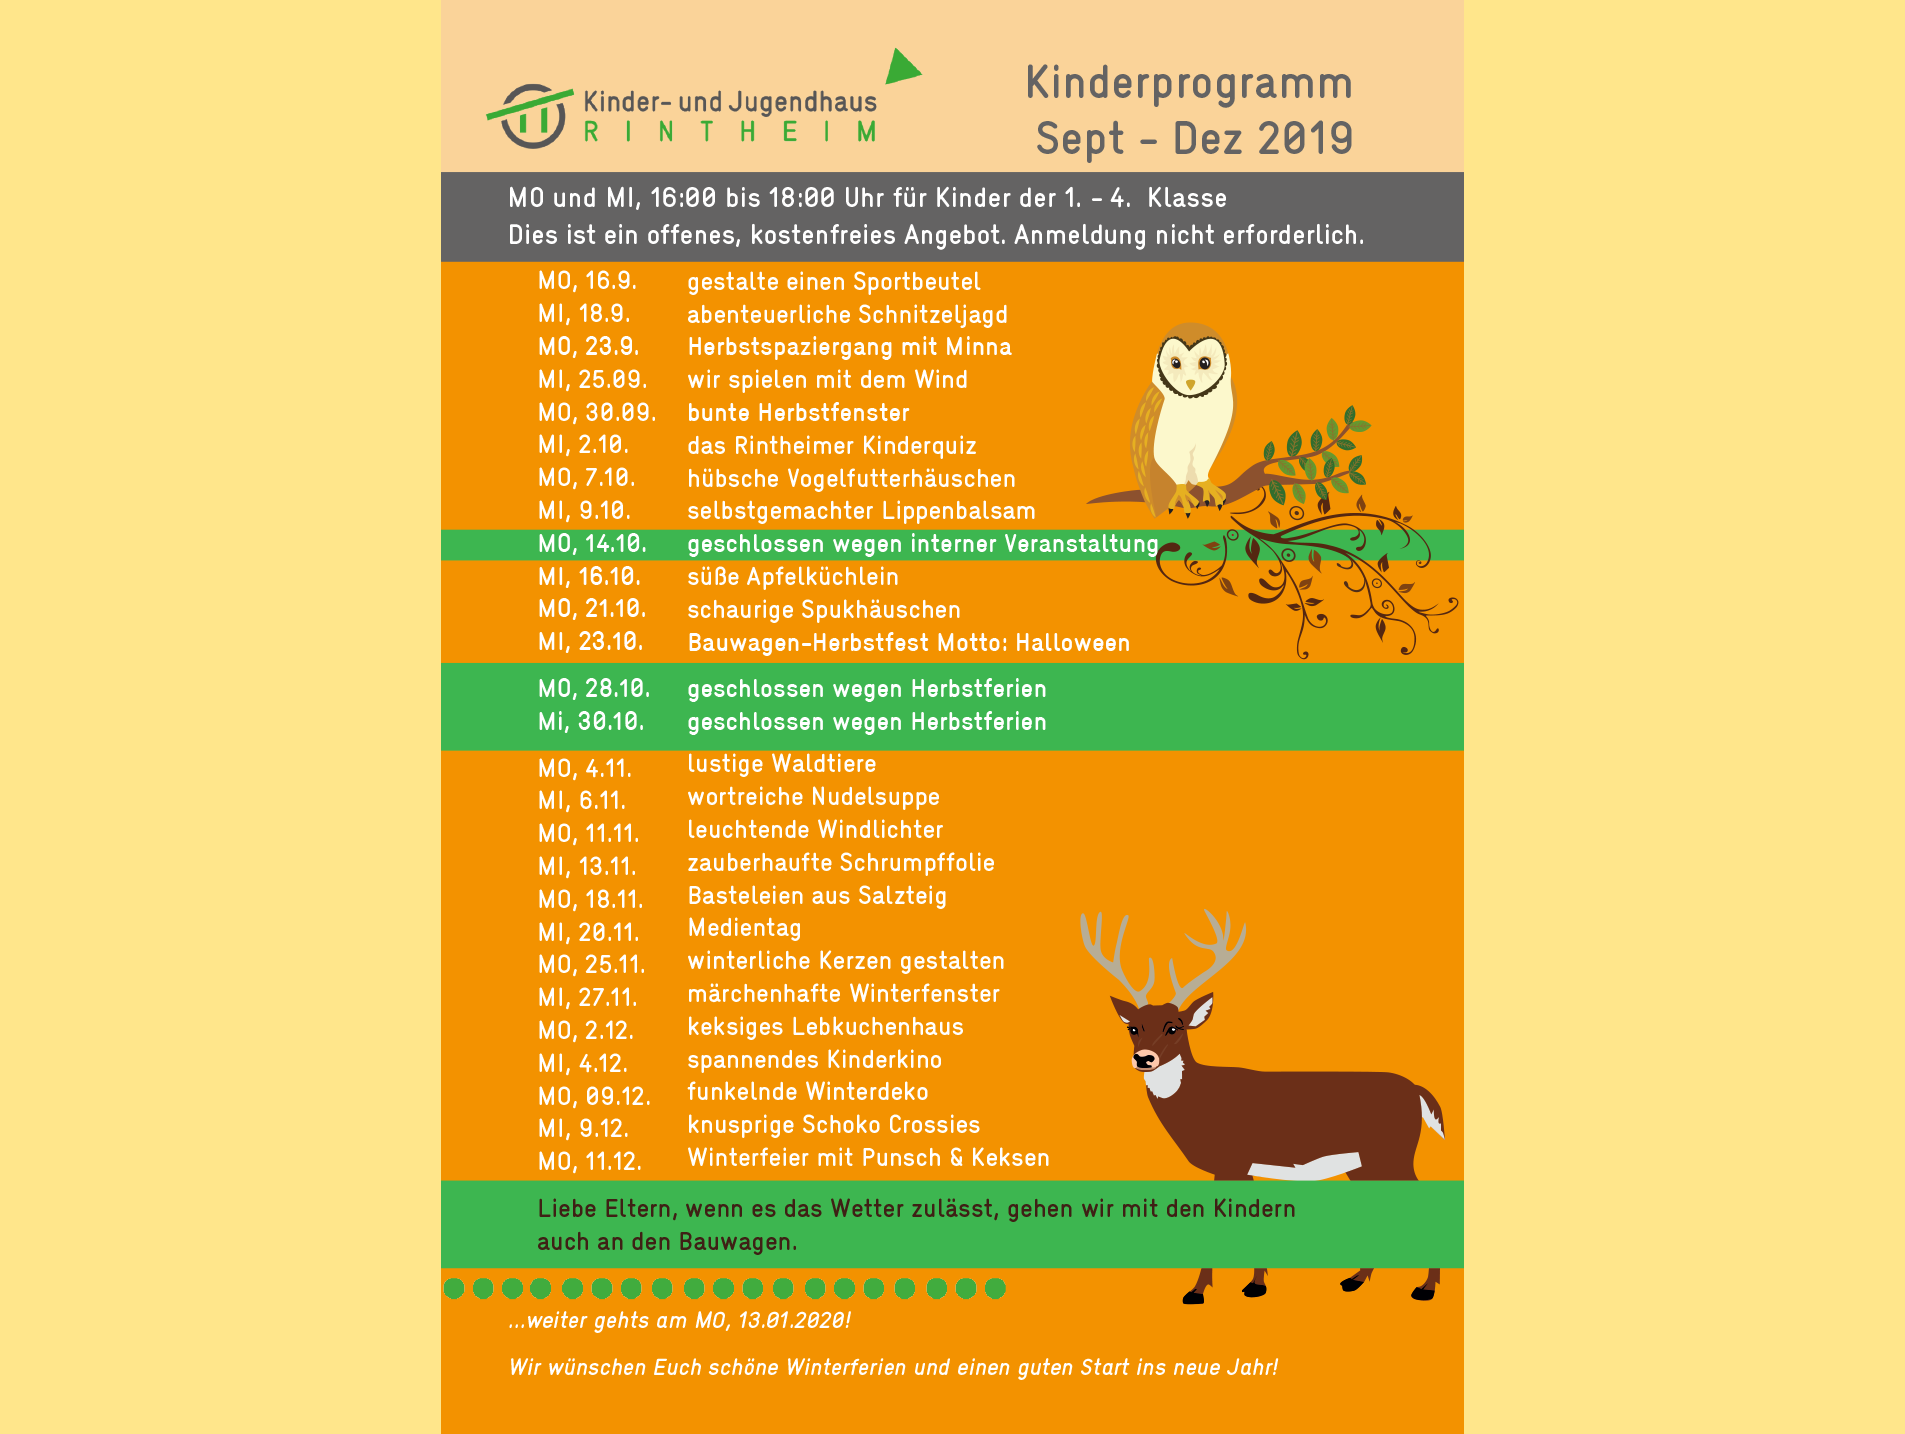 News_Kinderprogramm_Sep - Dez 2019